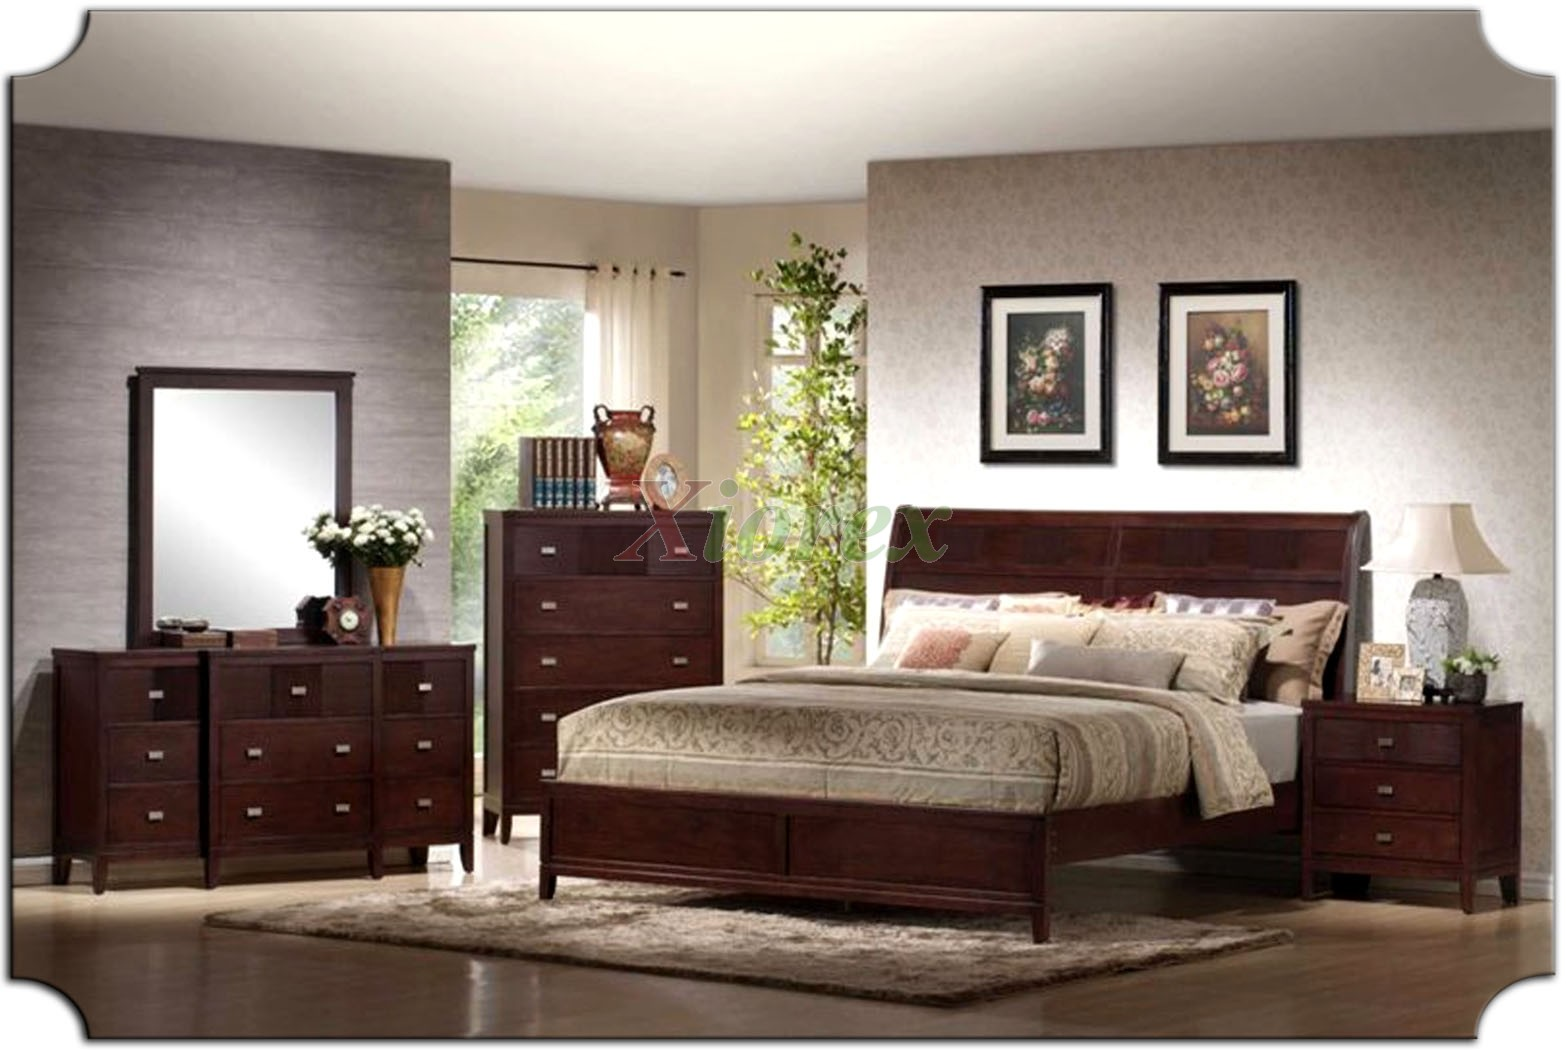 Platform bedroom furniture set with curved headboard beds for Headboard and dresser set